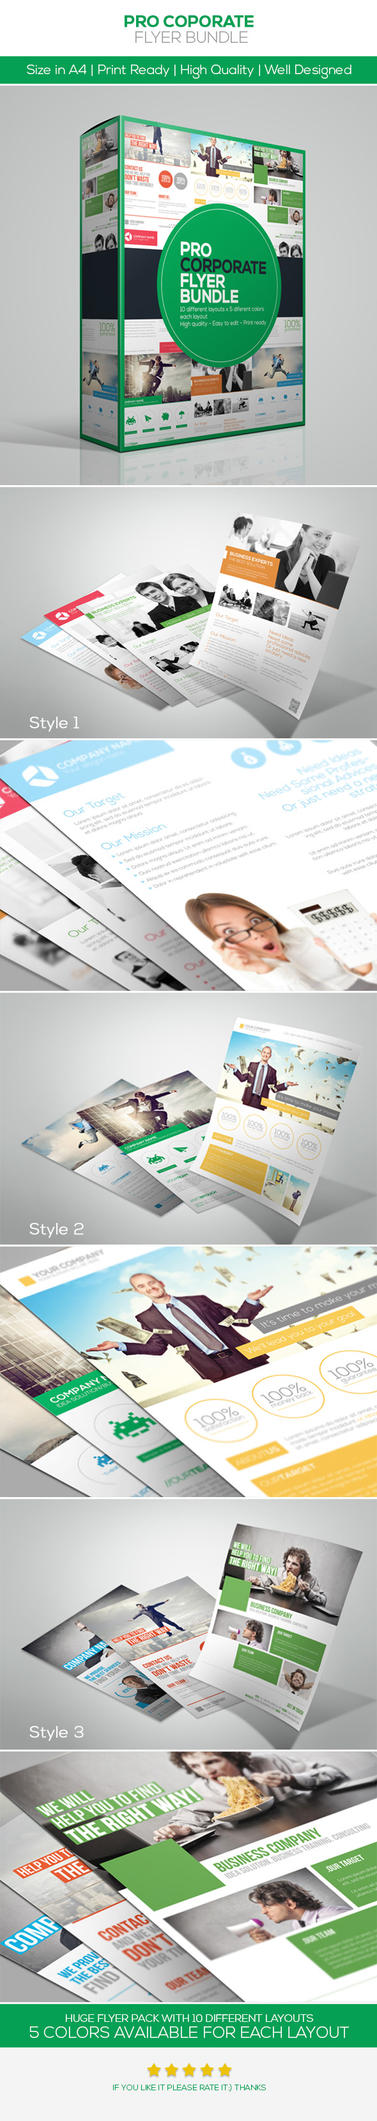 Premium Corporate Bundle by hoanggiang12